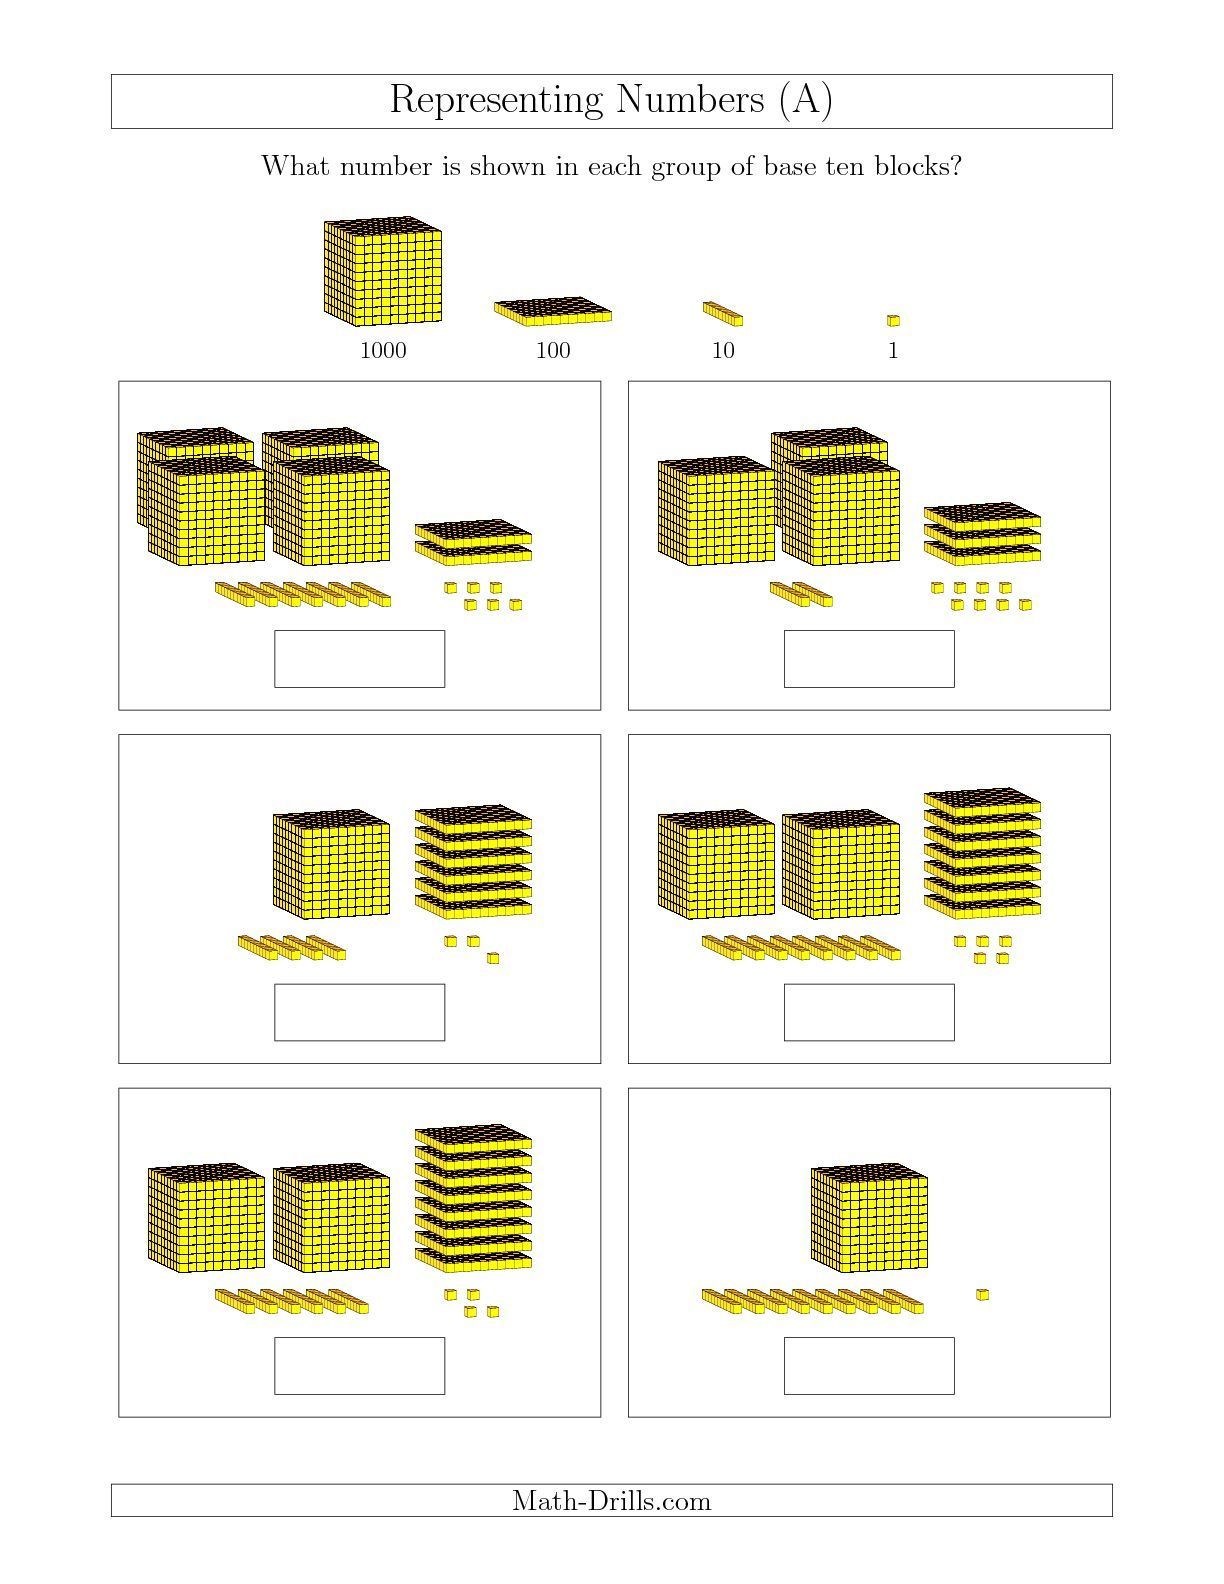 medium resolution of The Representing Numbers to 4999 with Base Ten Blocks (A) math worksheet  from the Base Ten Blocks Worksheet page at Math-D…   Base ten blocks